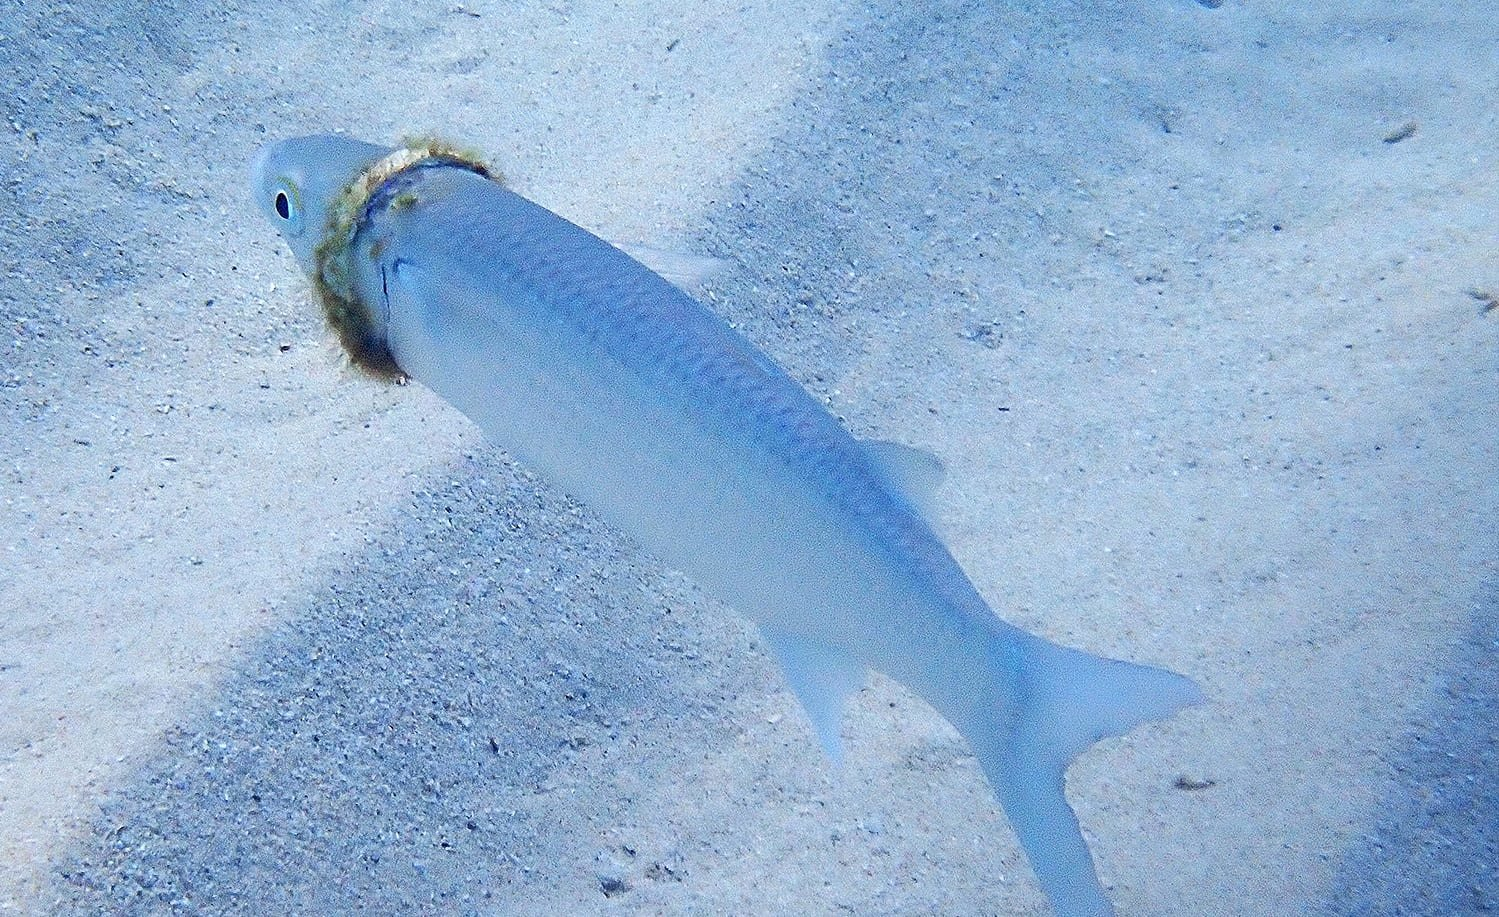 Snorkeler spots man's lost wedding ring on a tiny fish. Now what?